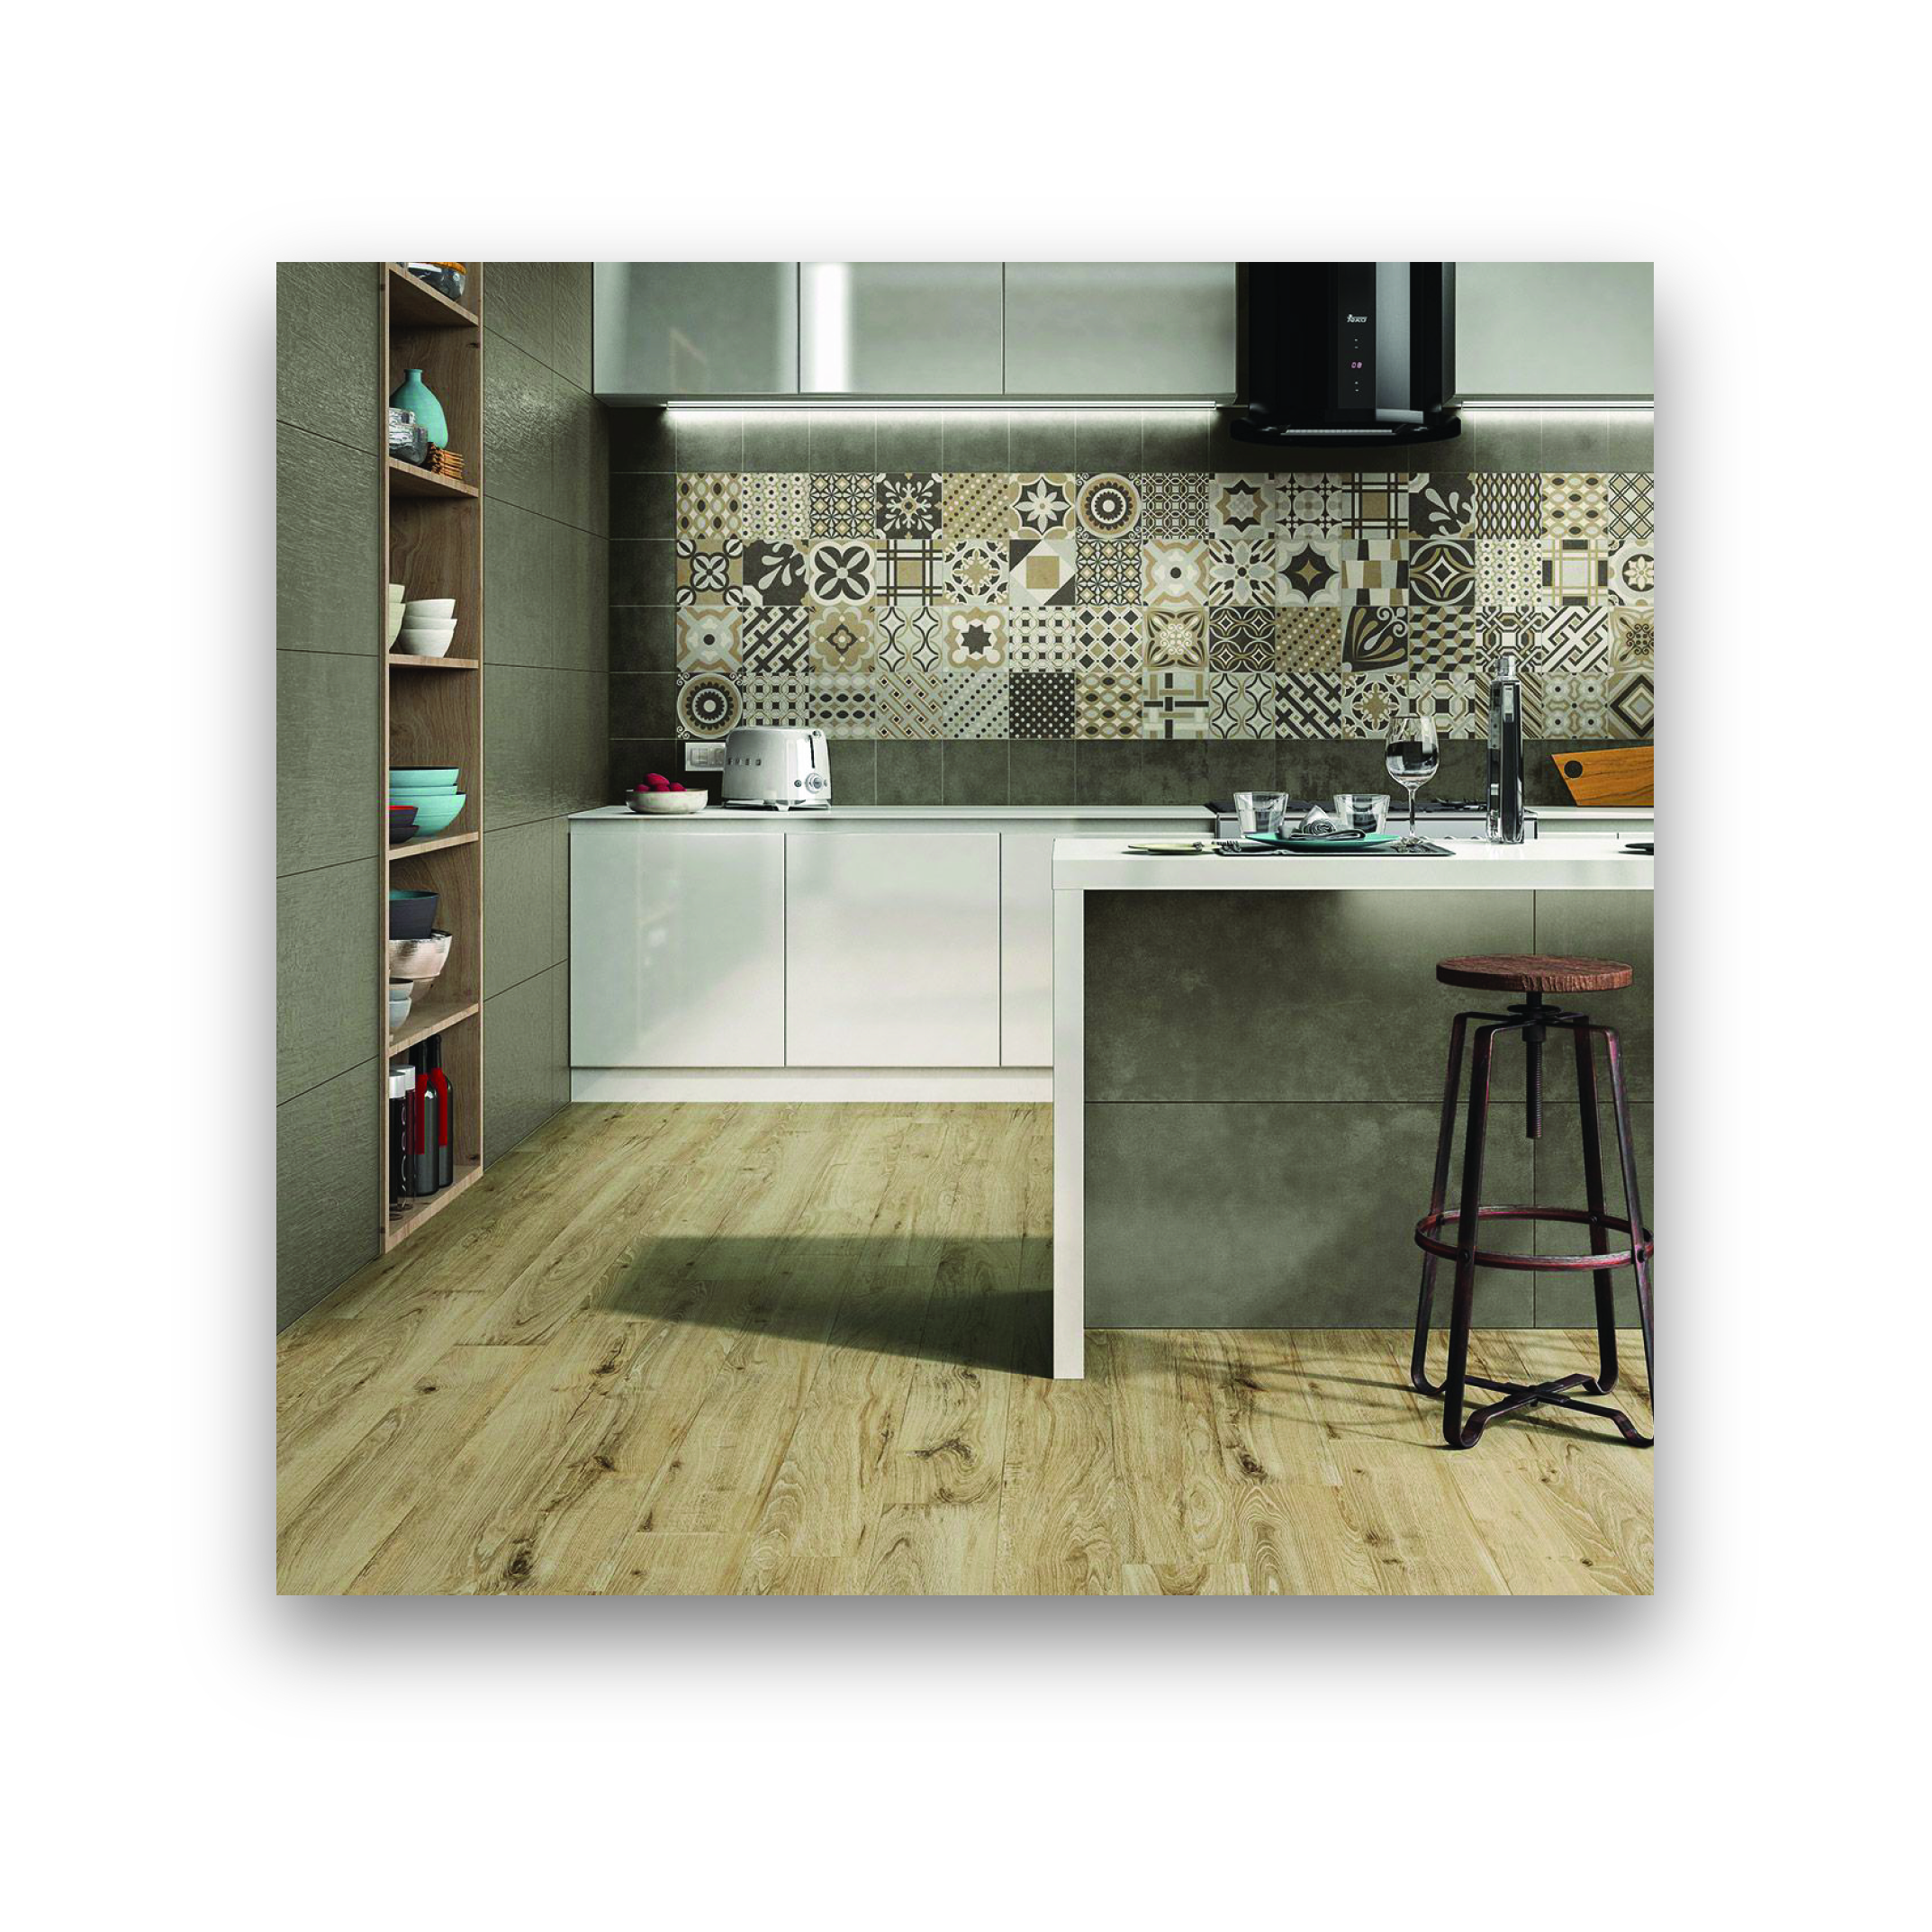 All Natural Stone Stock Material, All Natural Stone Stock Porcelain, Paris